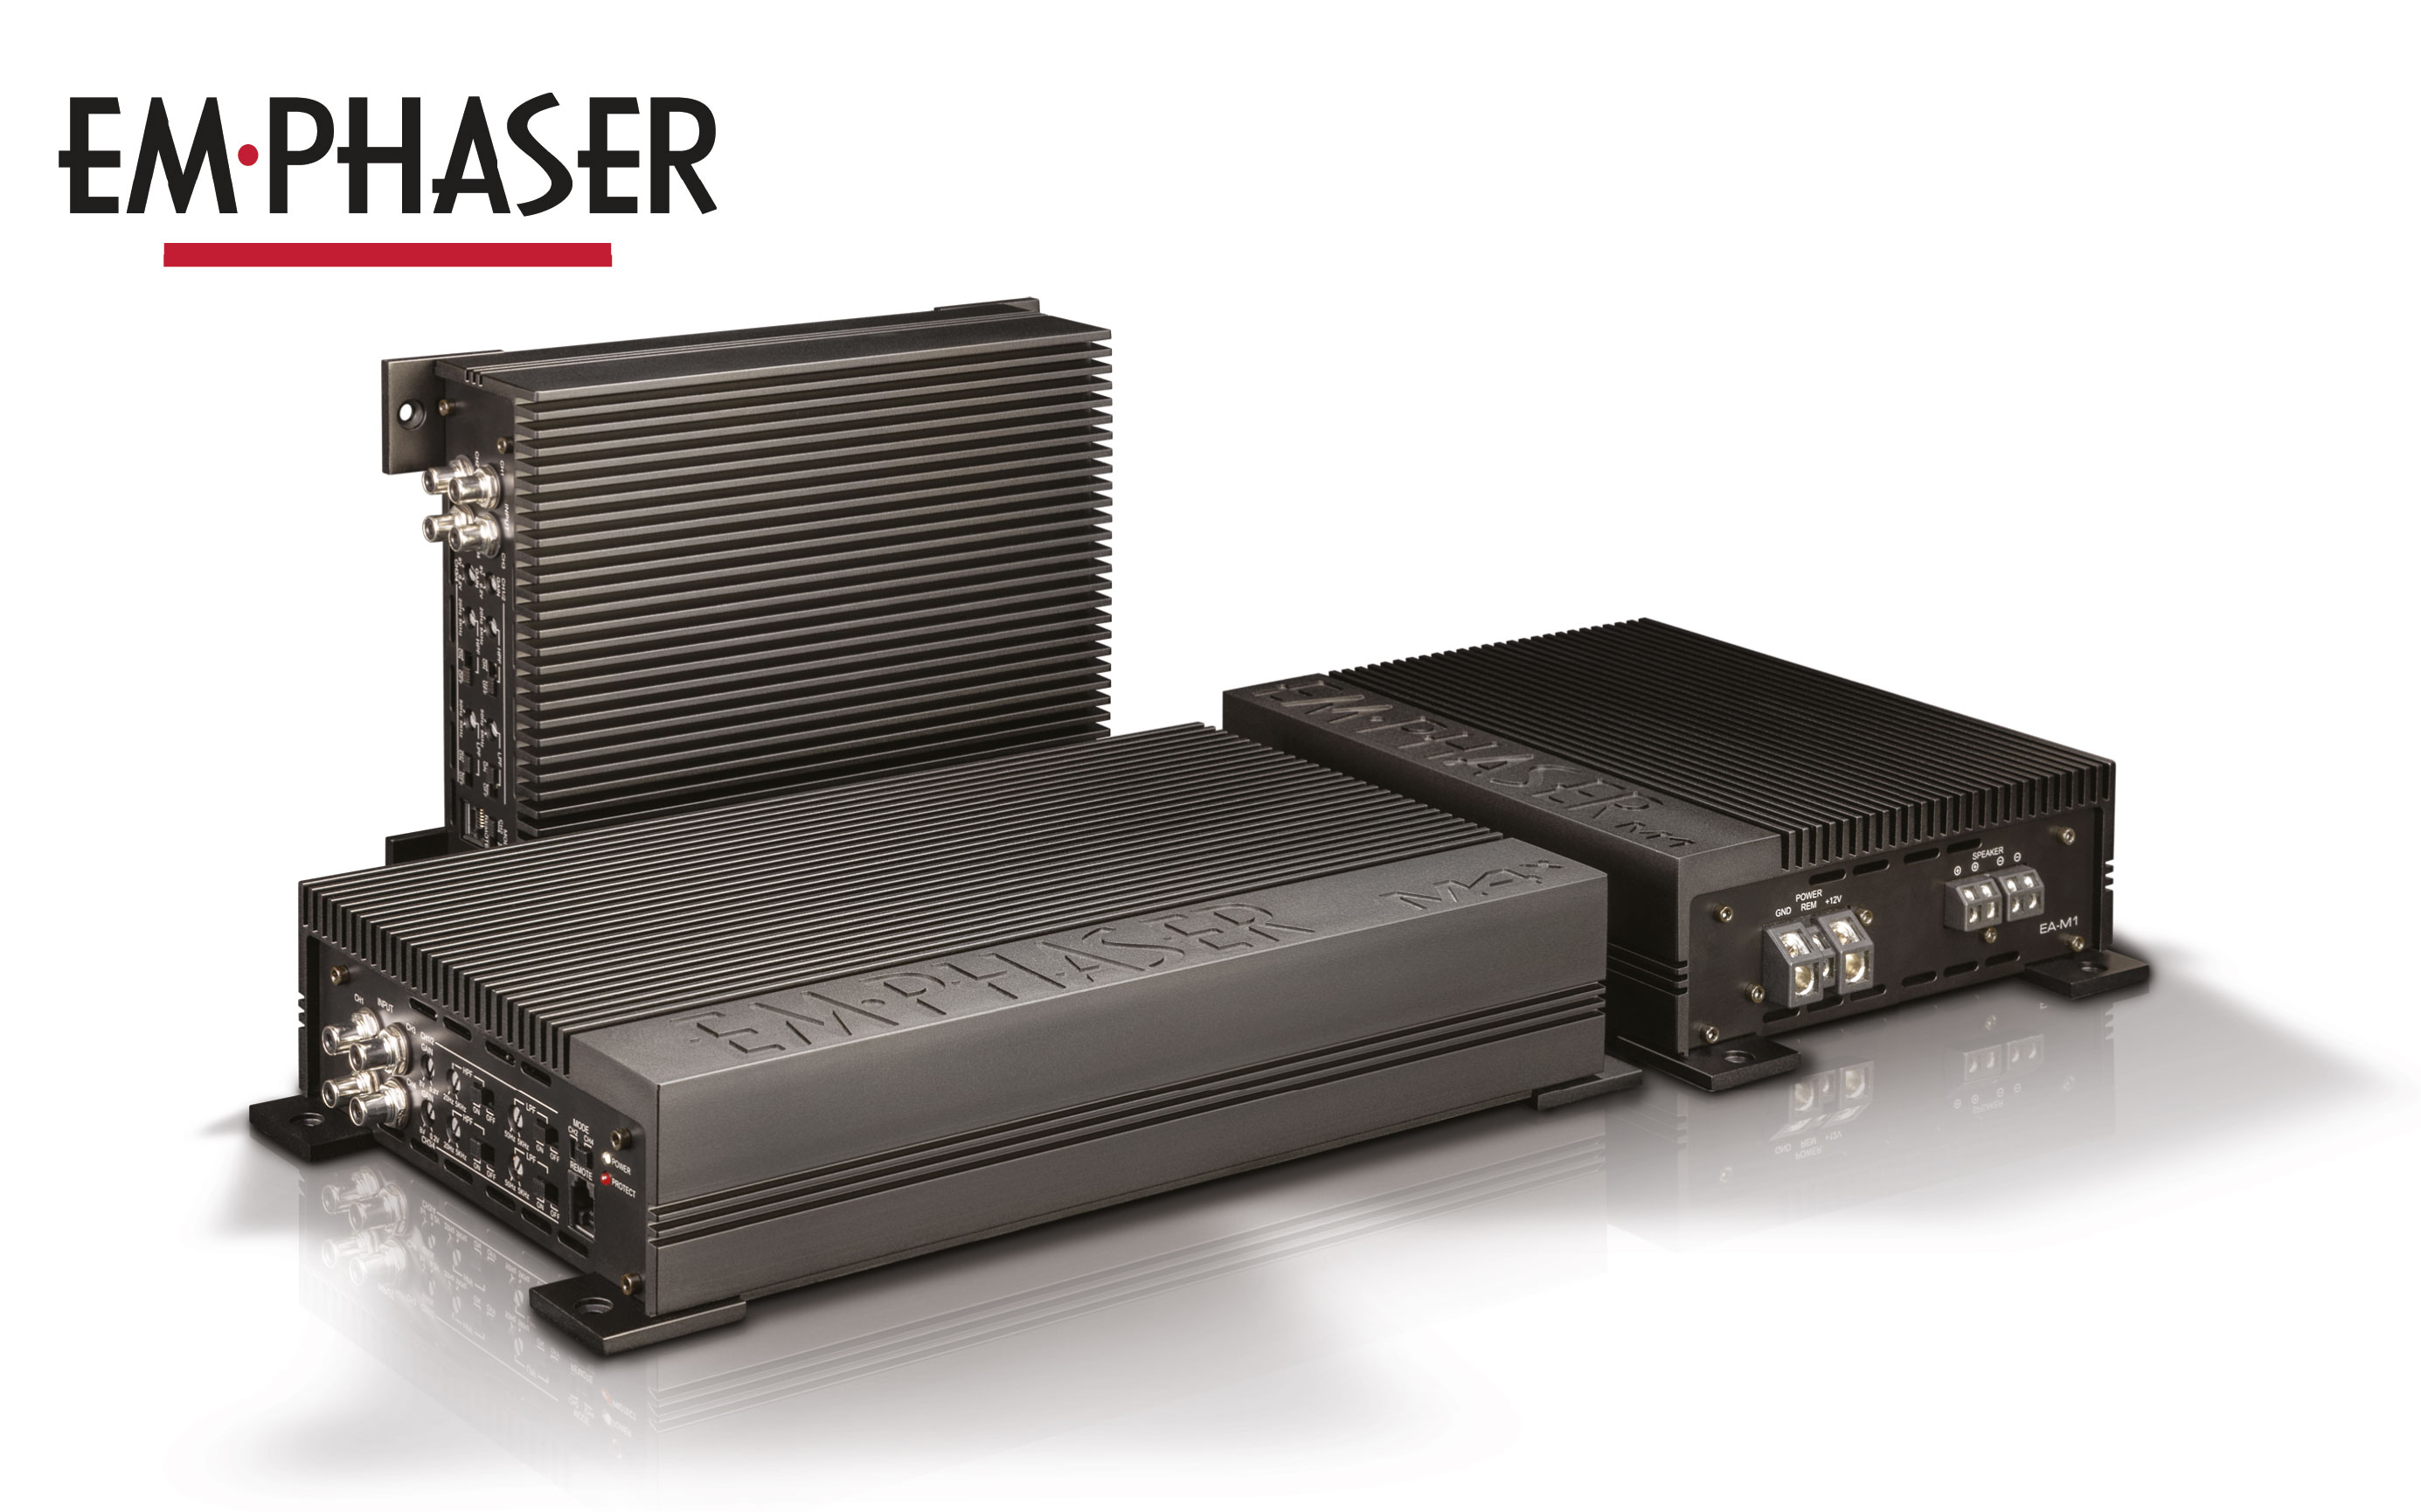 Top Class Digital Amplifiers: EMPHASER's Monolith Series